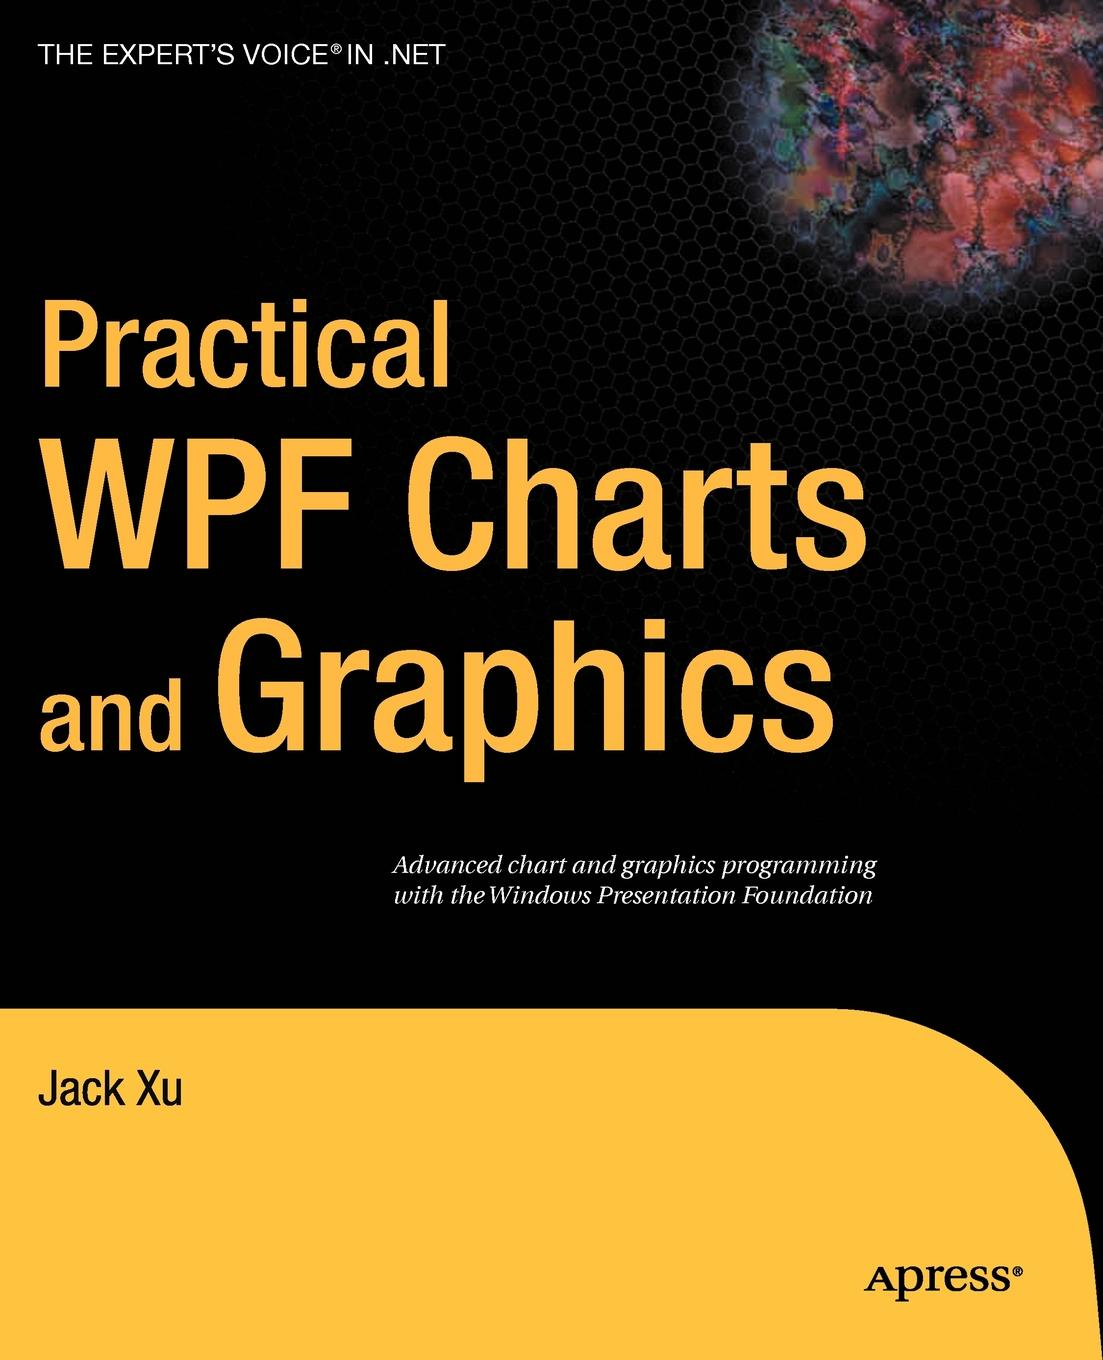 цена на Jack Xu Practical WPF Charts and Graphics. Advanced Chart and Graphics Programming with the Windows Presentation Foundation